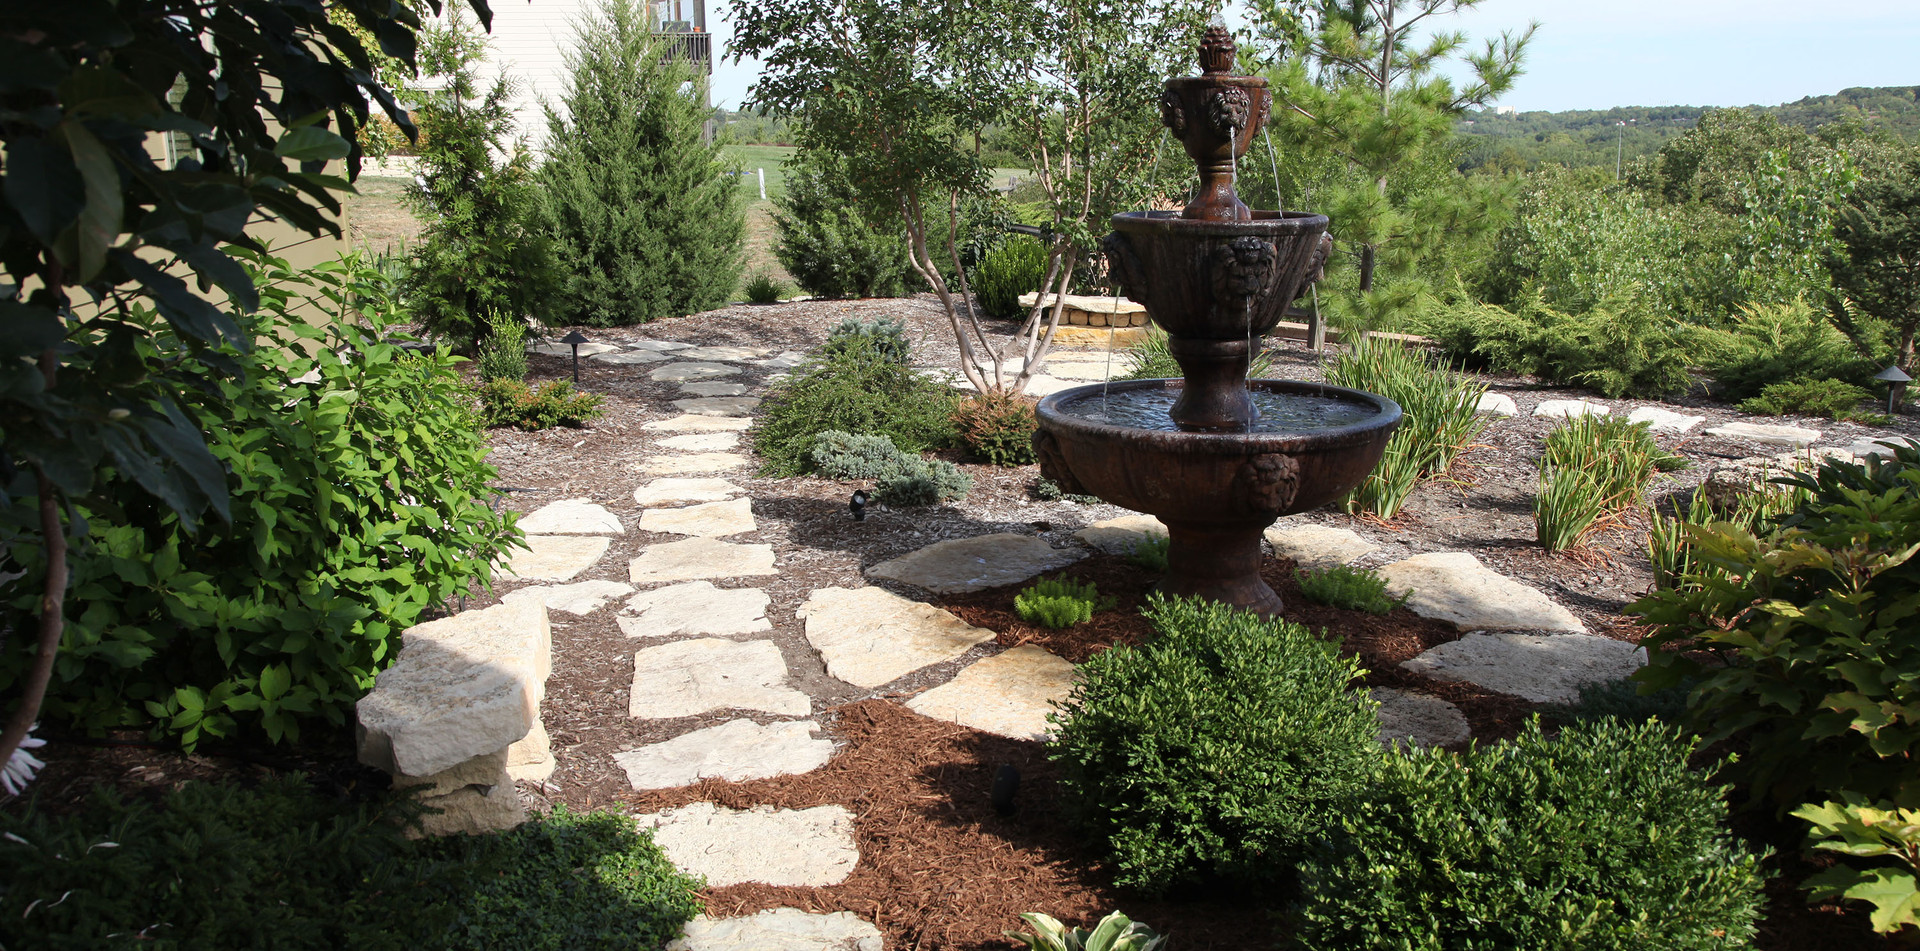 Backyard Fountain and Pathway, Master Landscape, Inc.